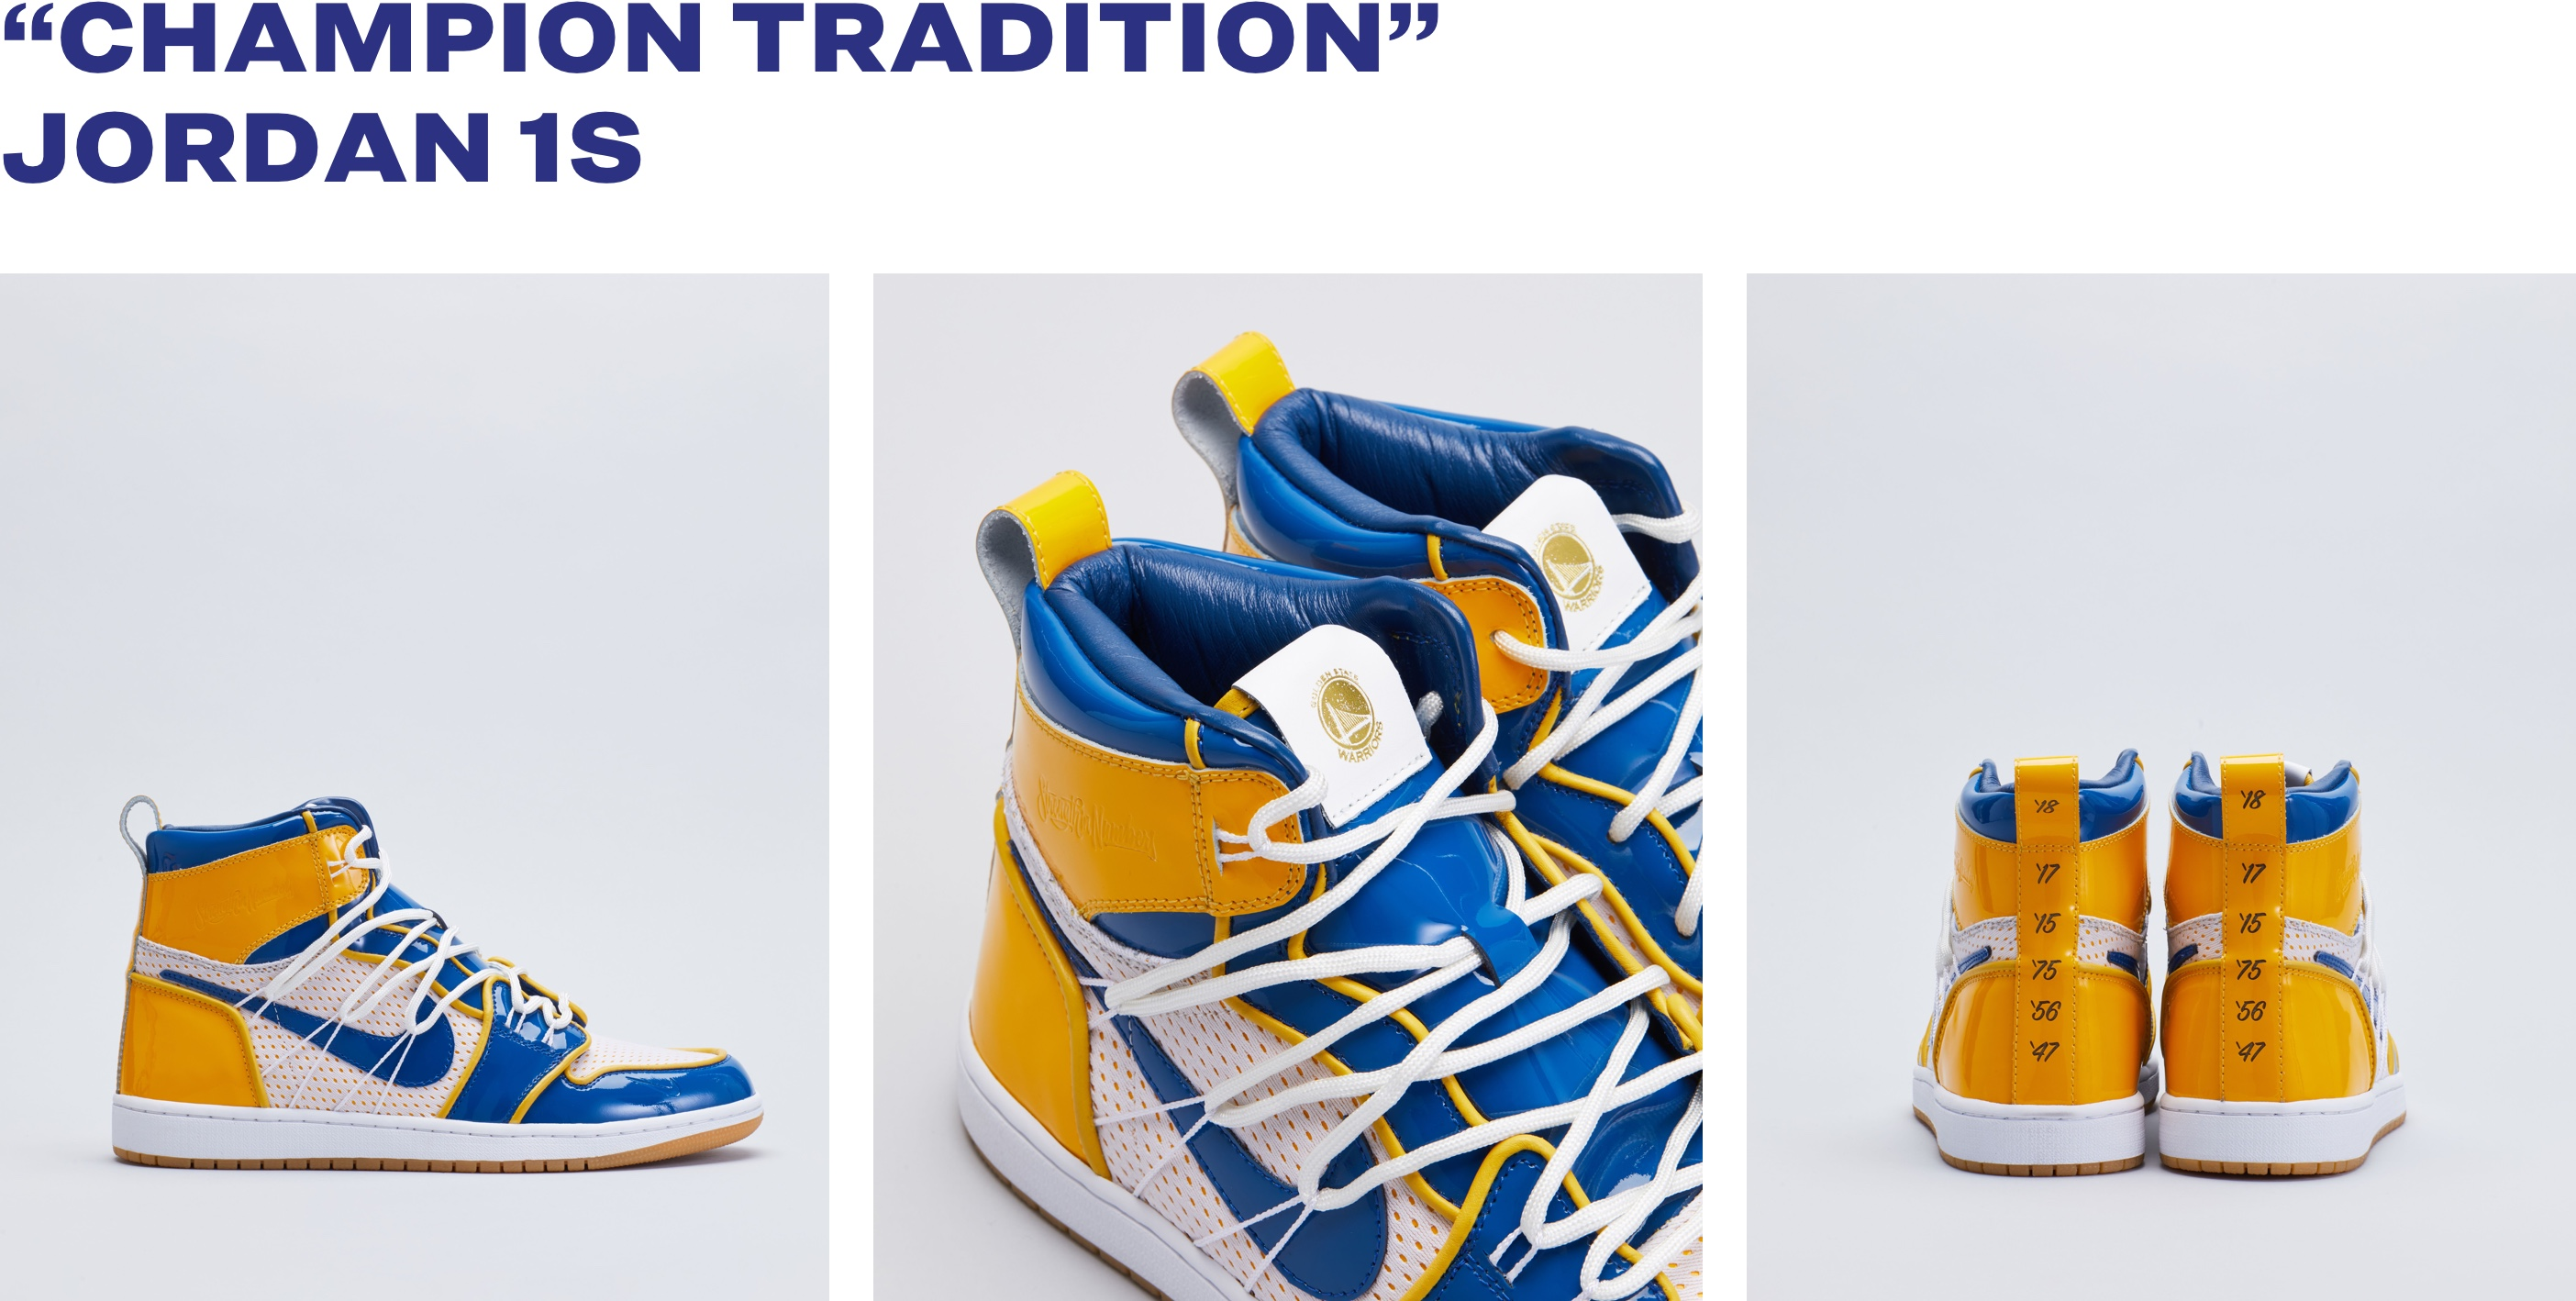 5f234822a031 The Golden State Warriors x The Shoe Surgeon - Charity Campaign